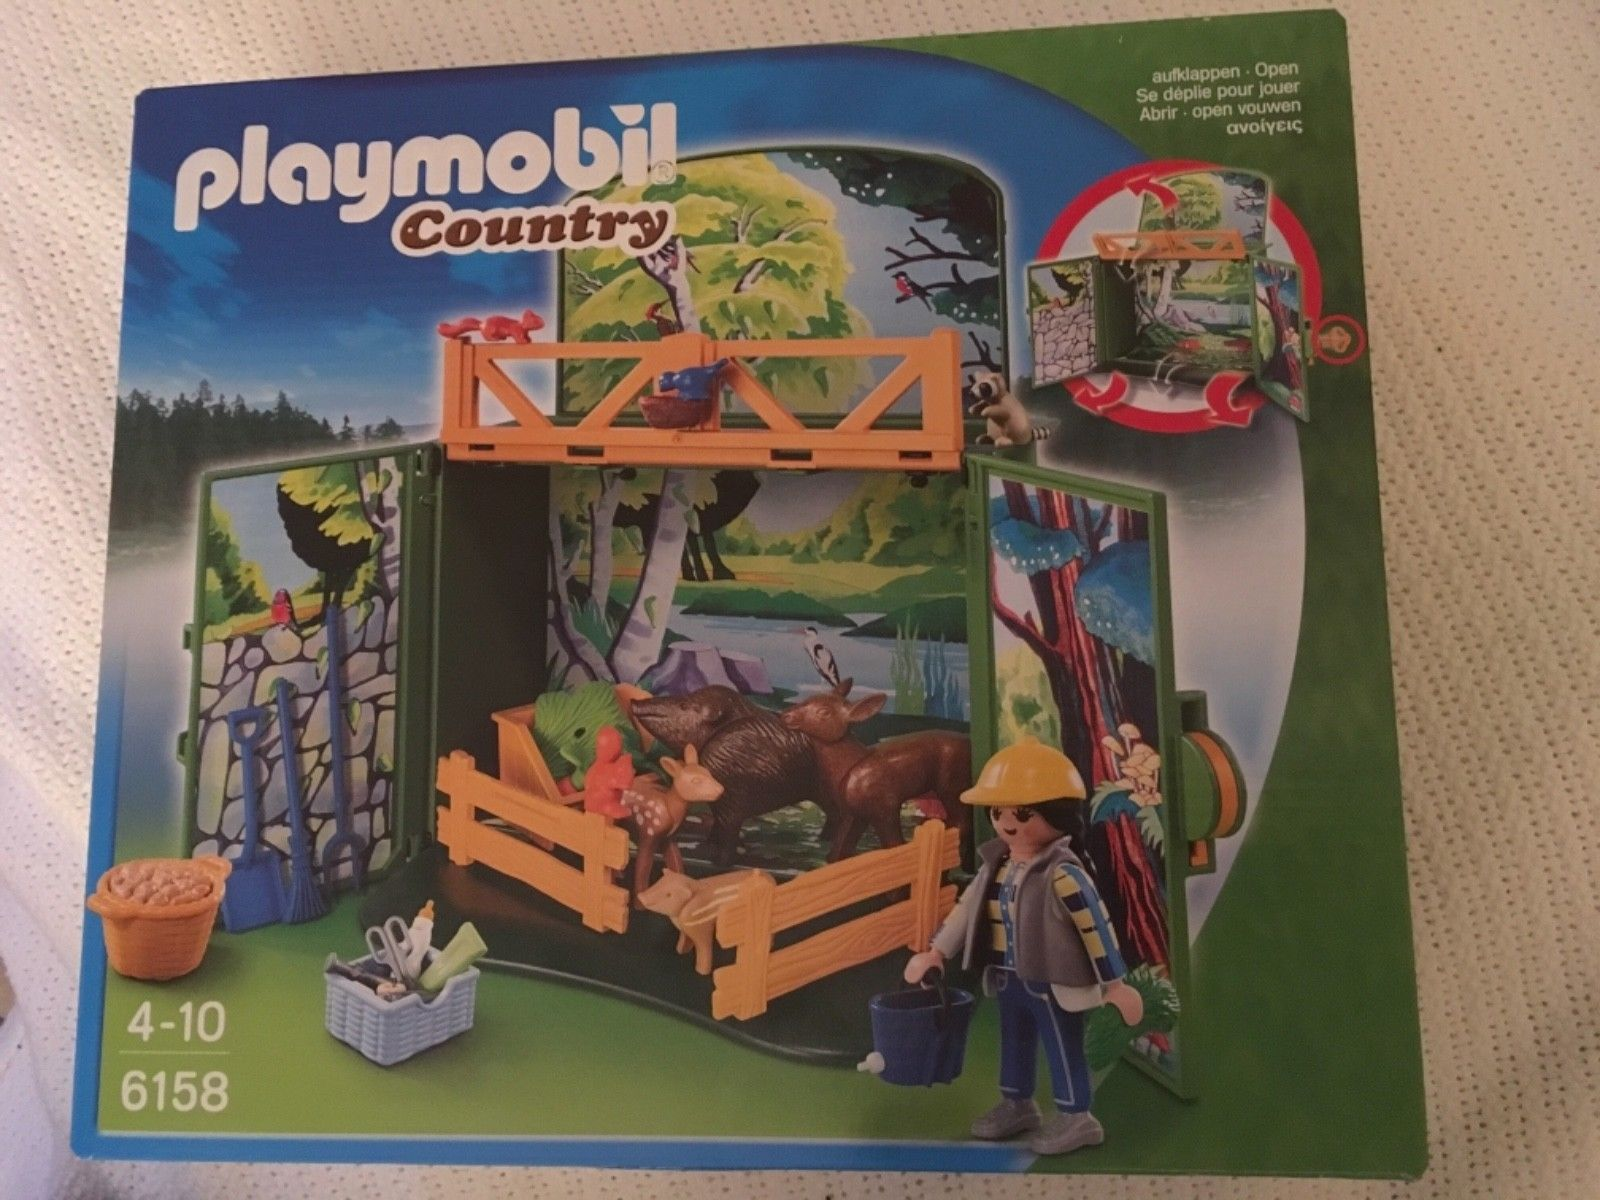 Playmobil country 6158